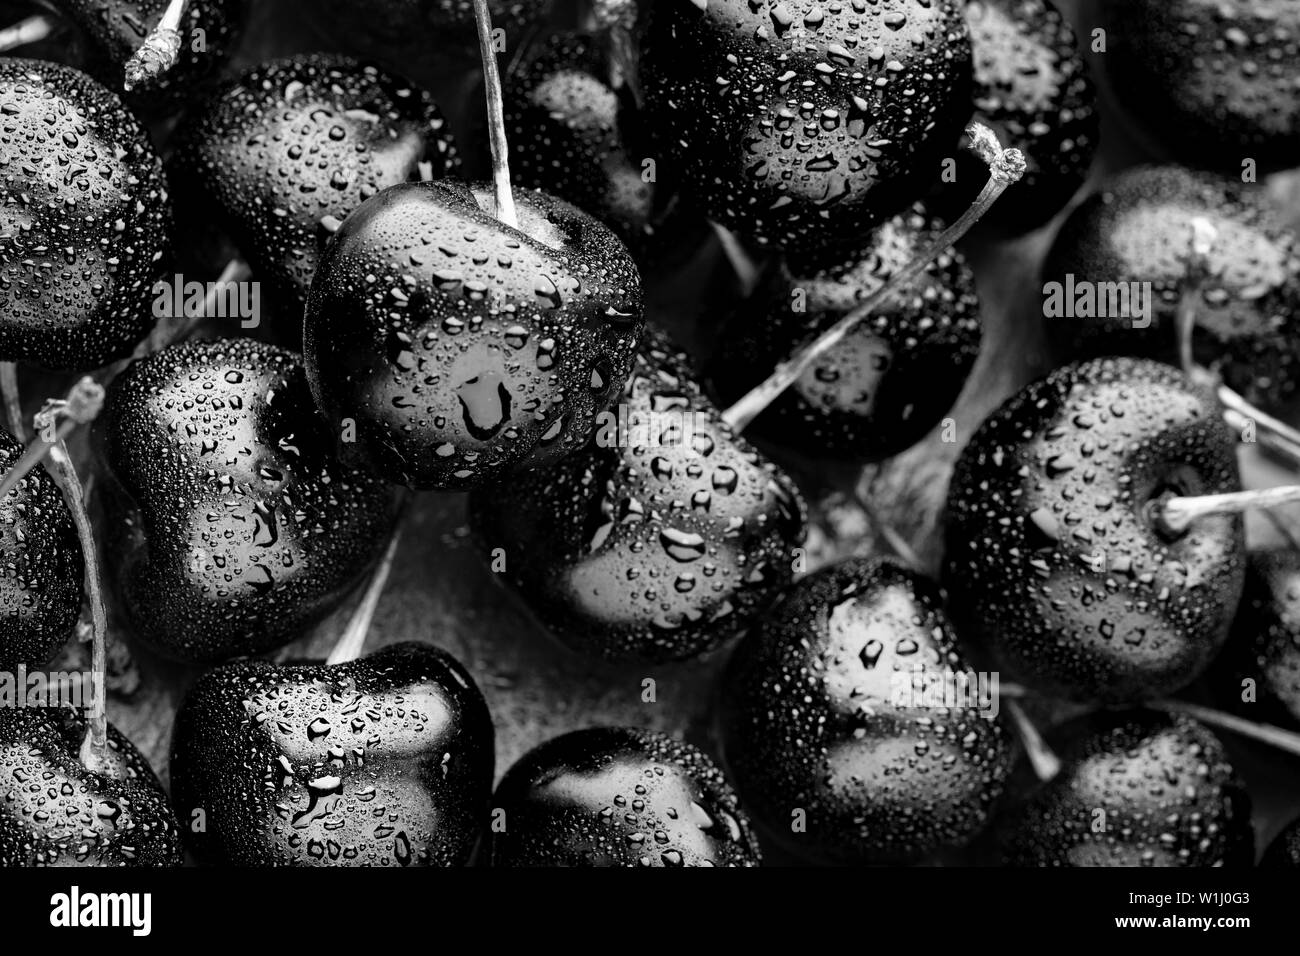 close-up of bright black ripe cherries. unusual blue background. Large collection of fresh black cherries. - Stock Image